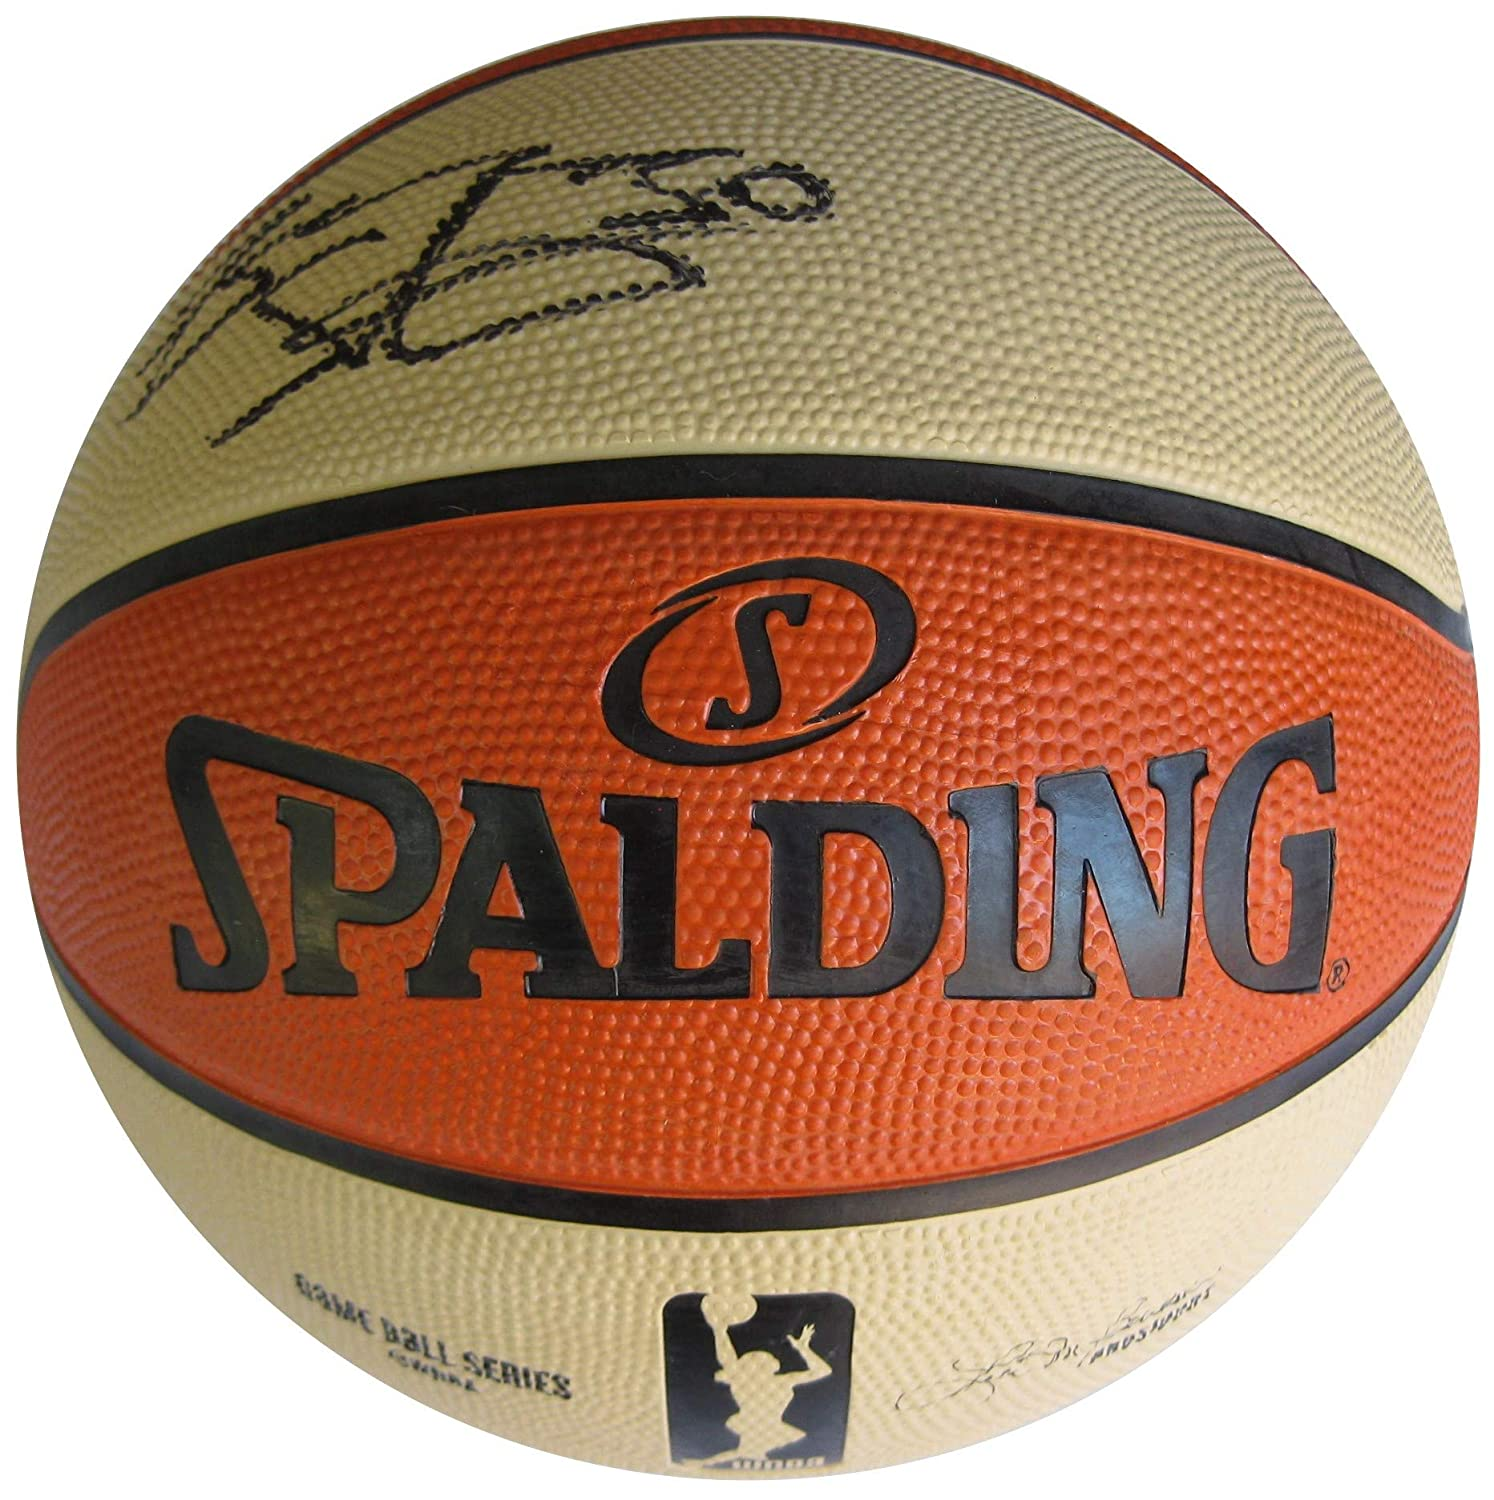 Breanna Stewart, Seattle Storm, Uconn, Signed, Autographed, WNBA Basketball, a COA with the Proof Photo of Breanna Signing Will Be Included SPALDING